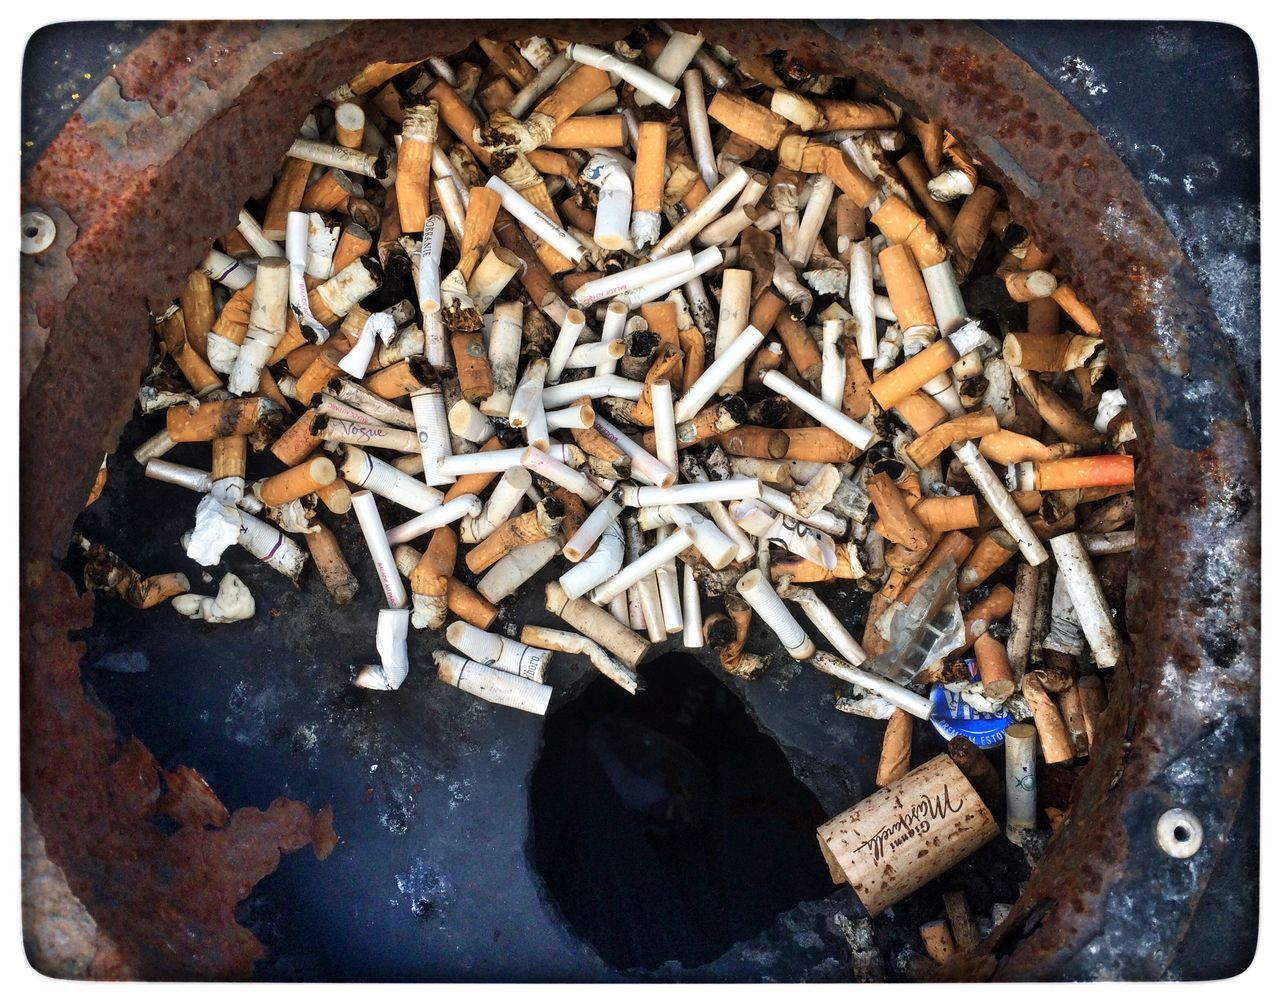 Ashtray  Bus Stop Smoking Disgusting  Cancer A Street Cleaning